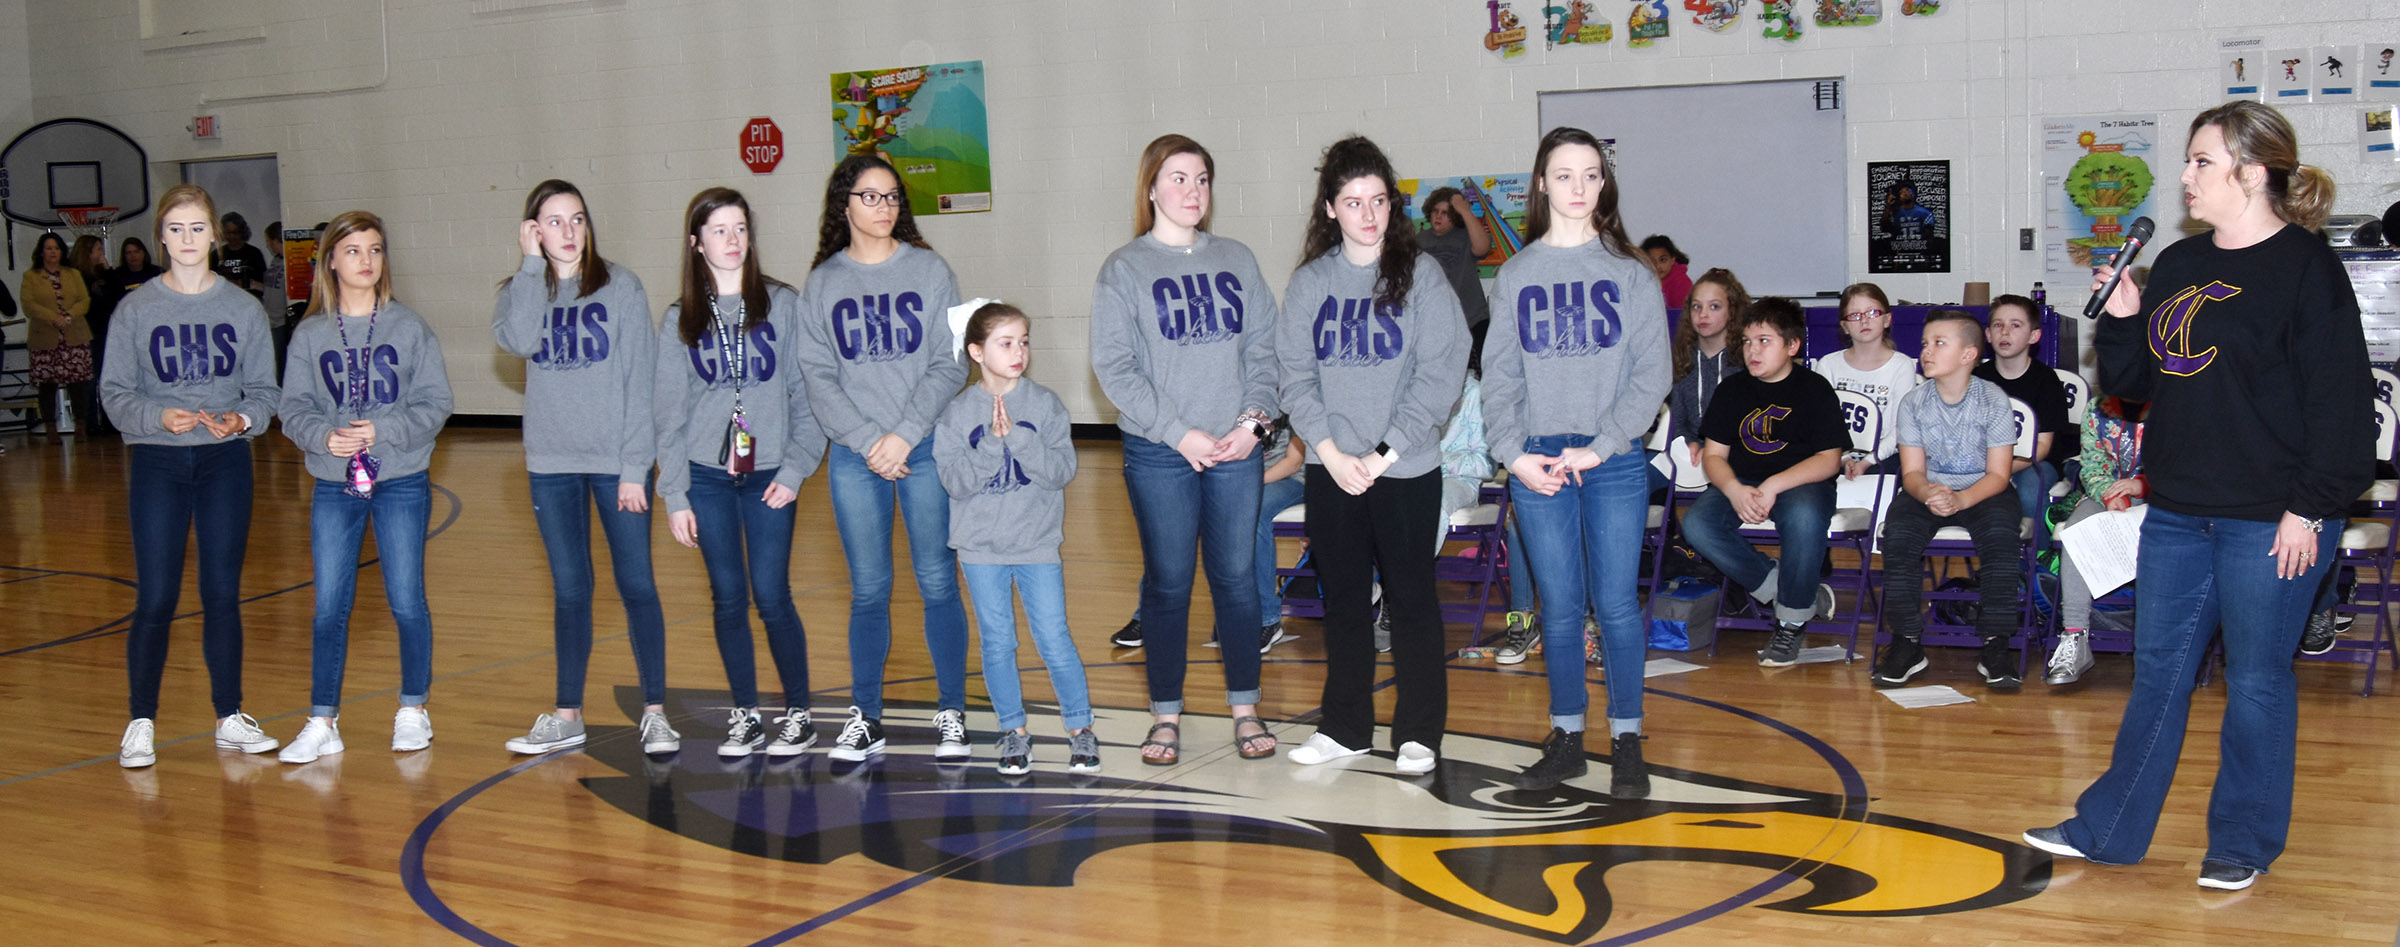 CHS cheerleading co-sponsor Nikki Price, at right, recognizes the CHS cheerleaders at the CES assembly on Friday, March 2.